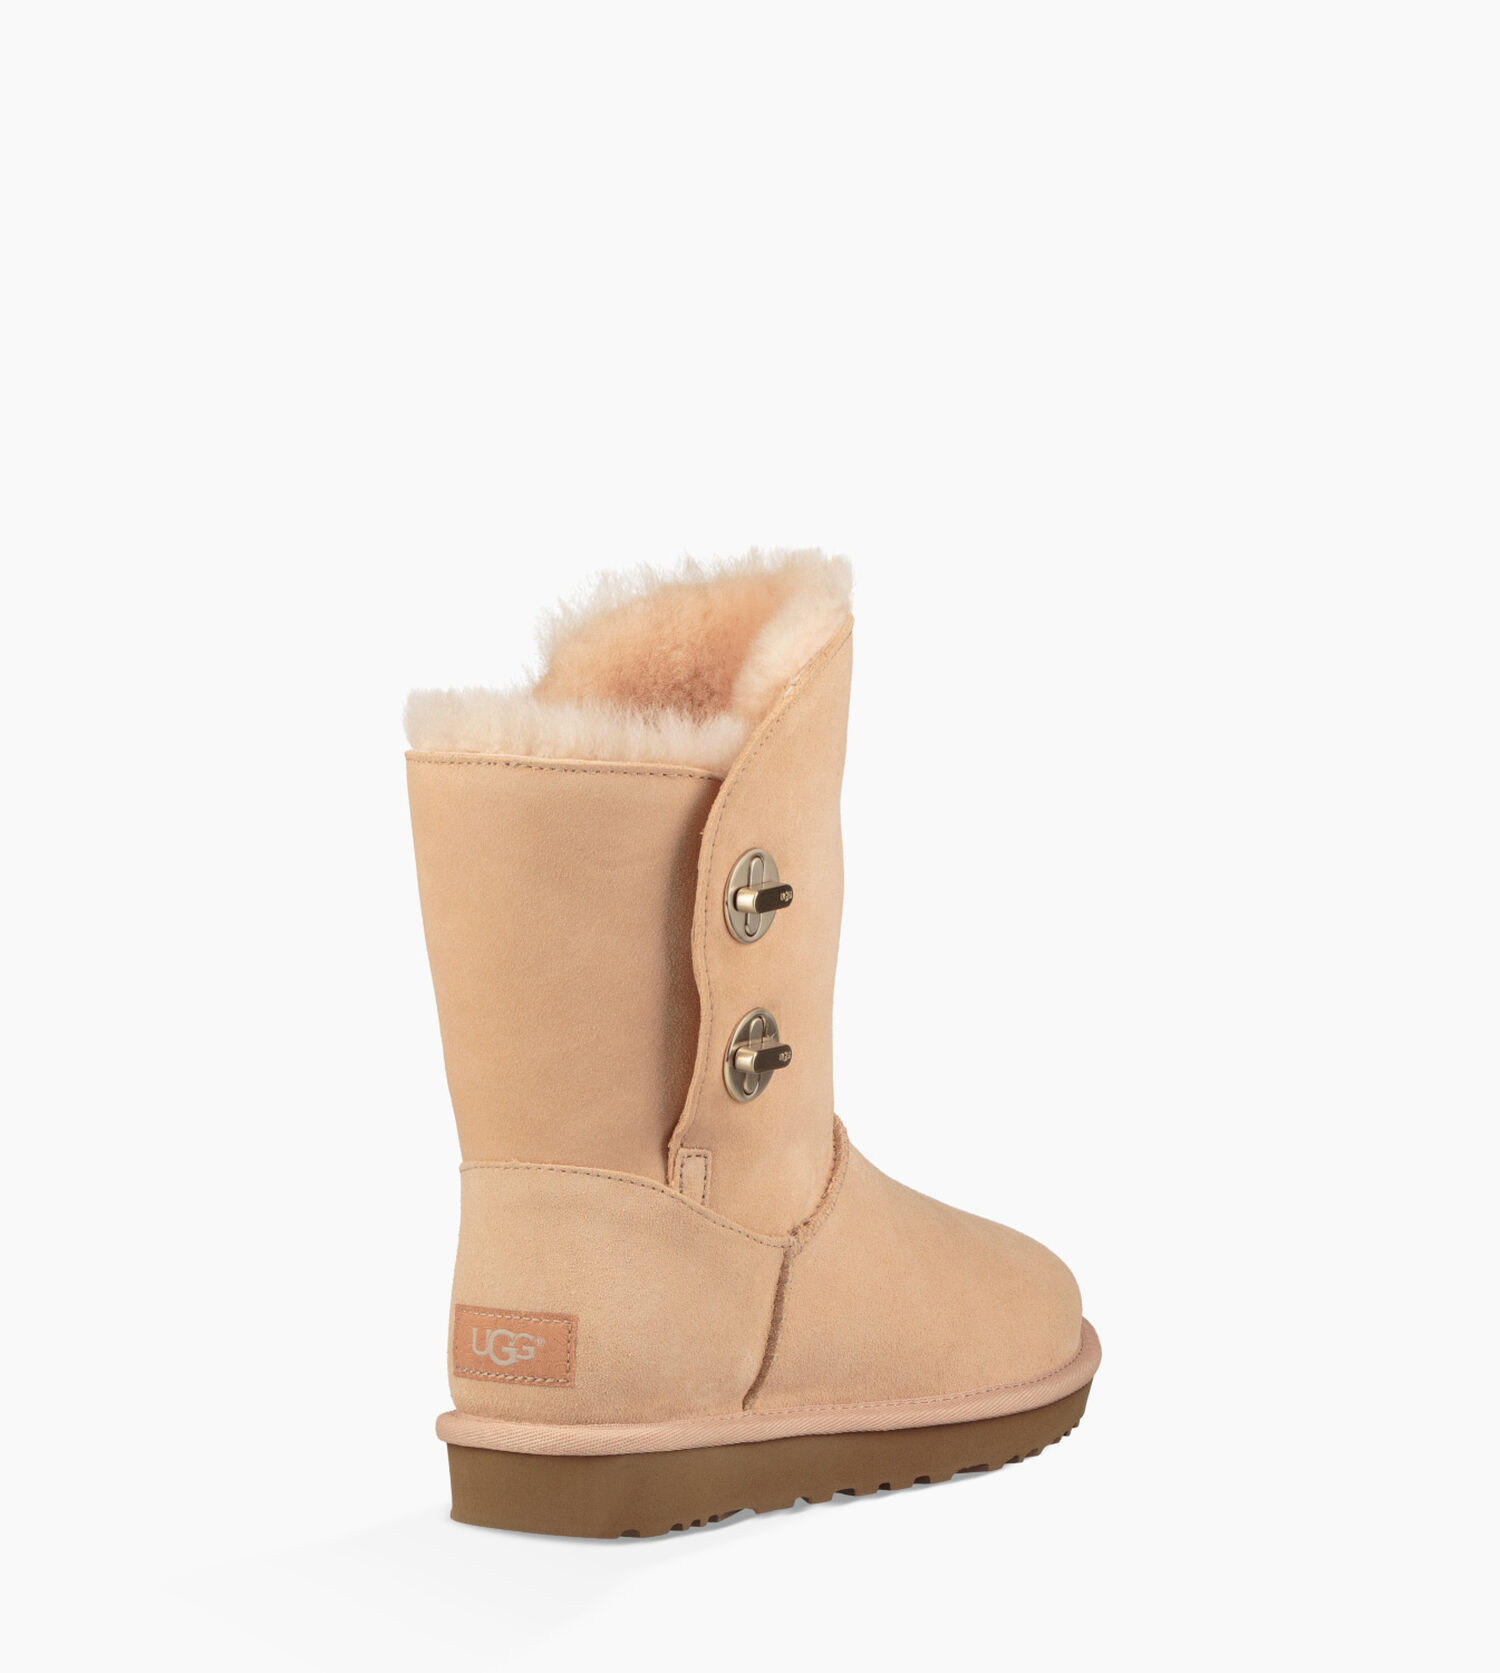 Women's Share this product Classic Short Turnlock Boot